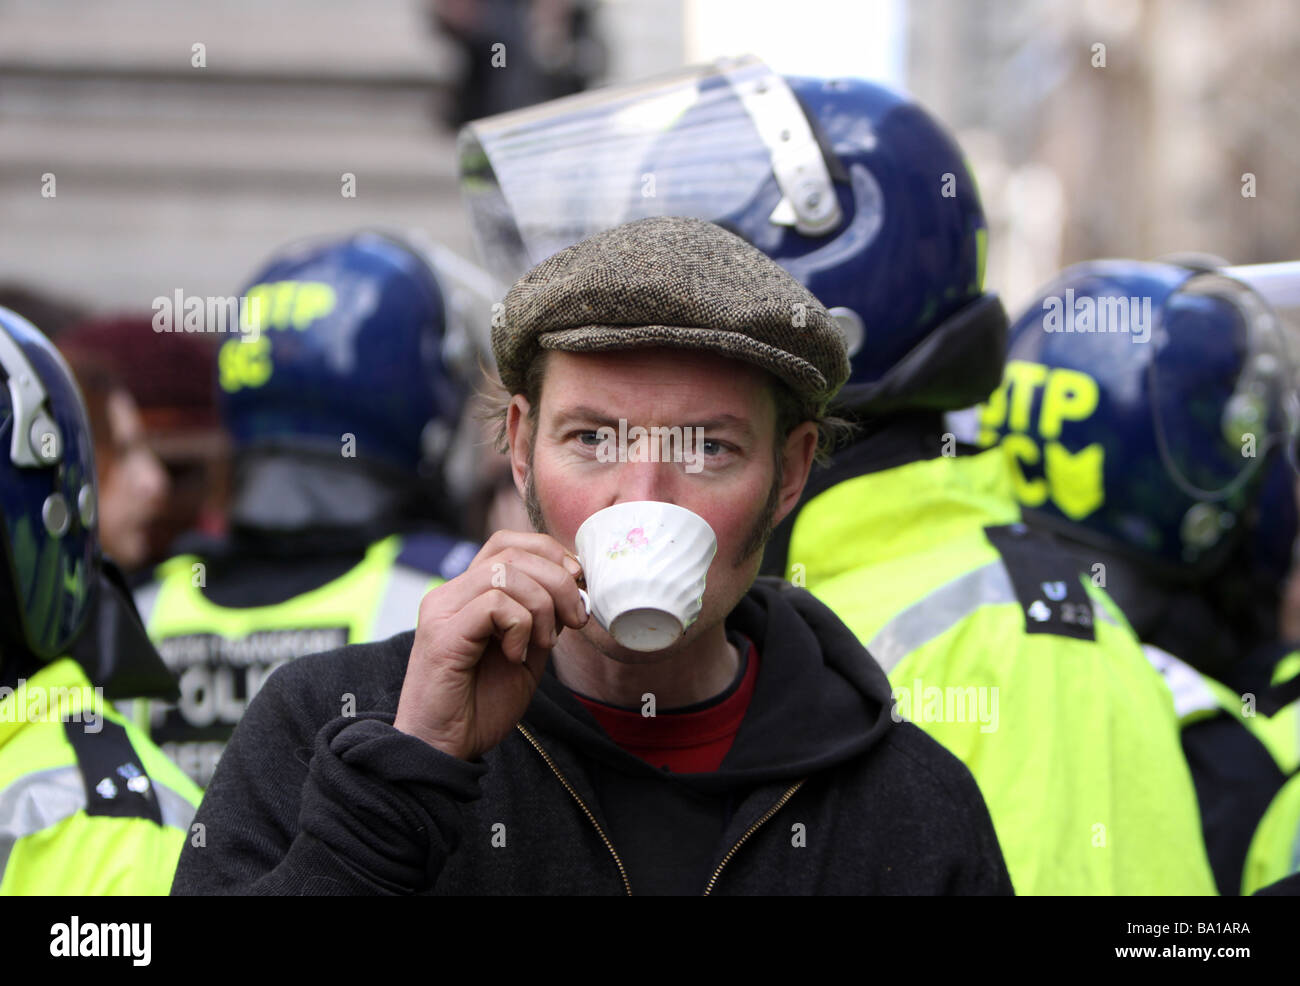 A protestor enjoys a cup of tea in front of a line of riot police at the G20 protests in London - Stock Image